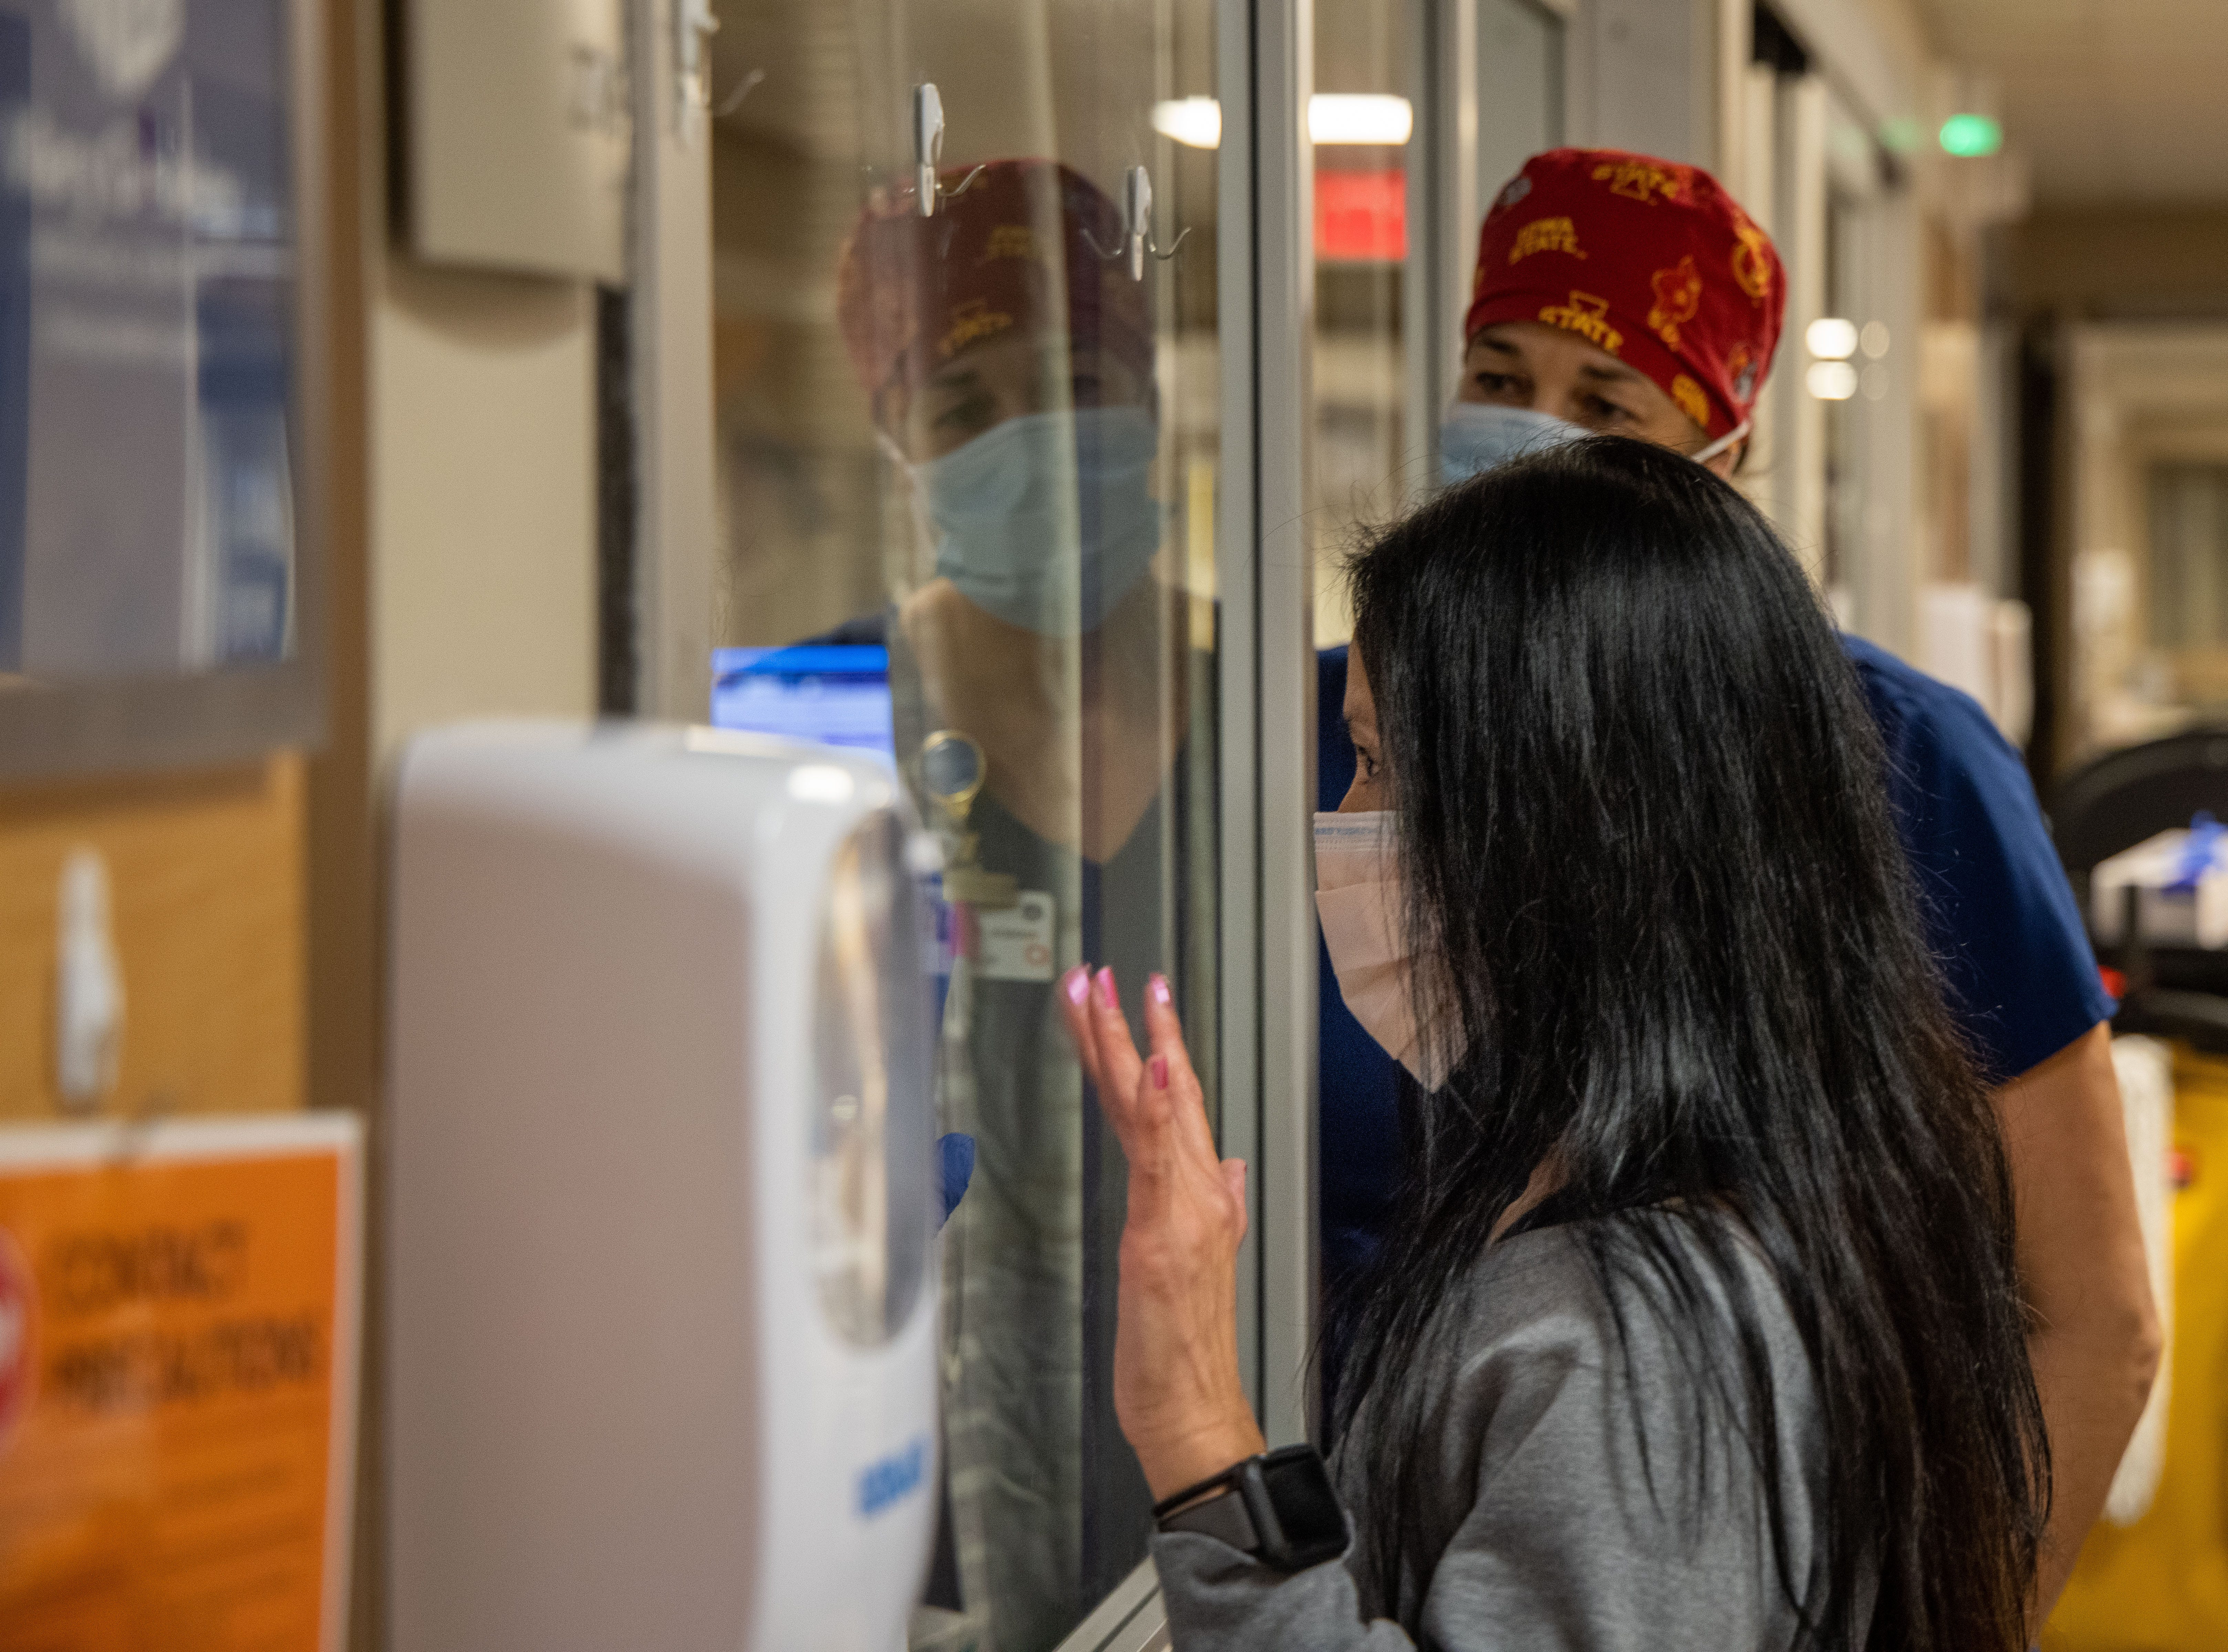 Jade Robinson waves to her mother Thong Sengphirom as she arrives for a visit in the ICU at Mary Greeley Medical Center in Ames, Iowa, Friday, Dec. 11, 2020.